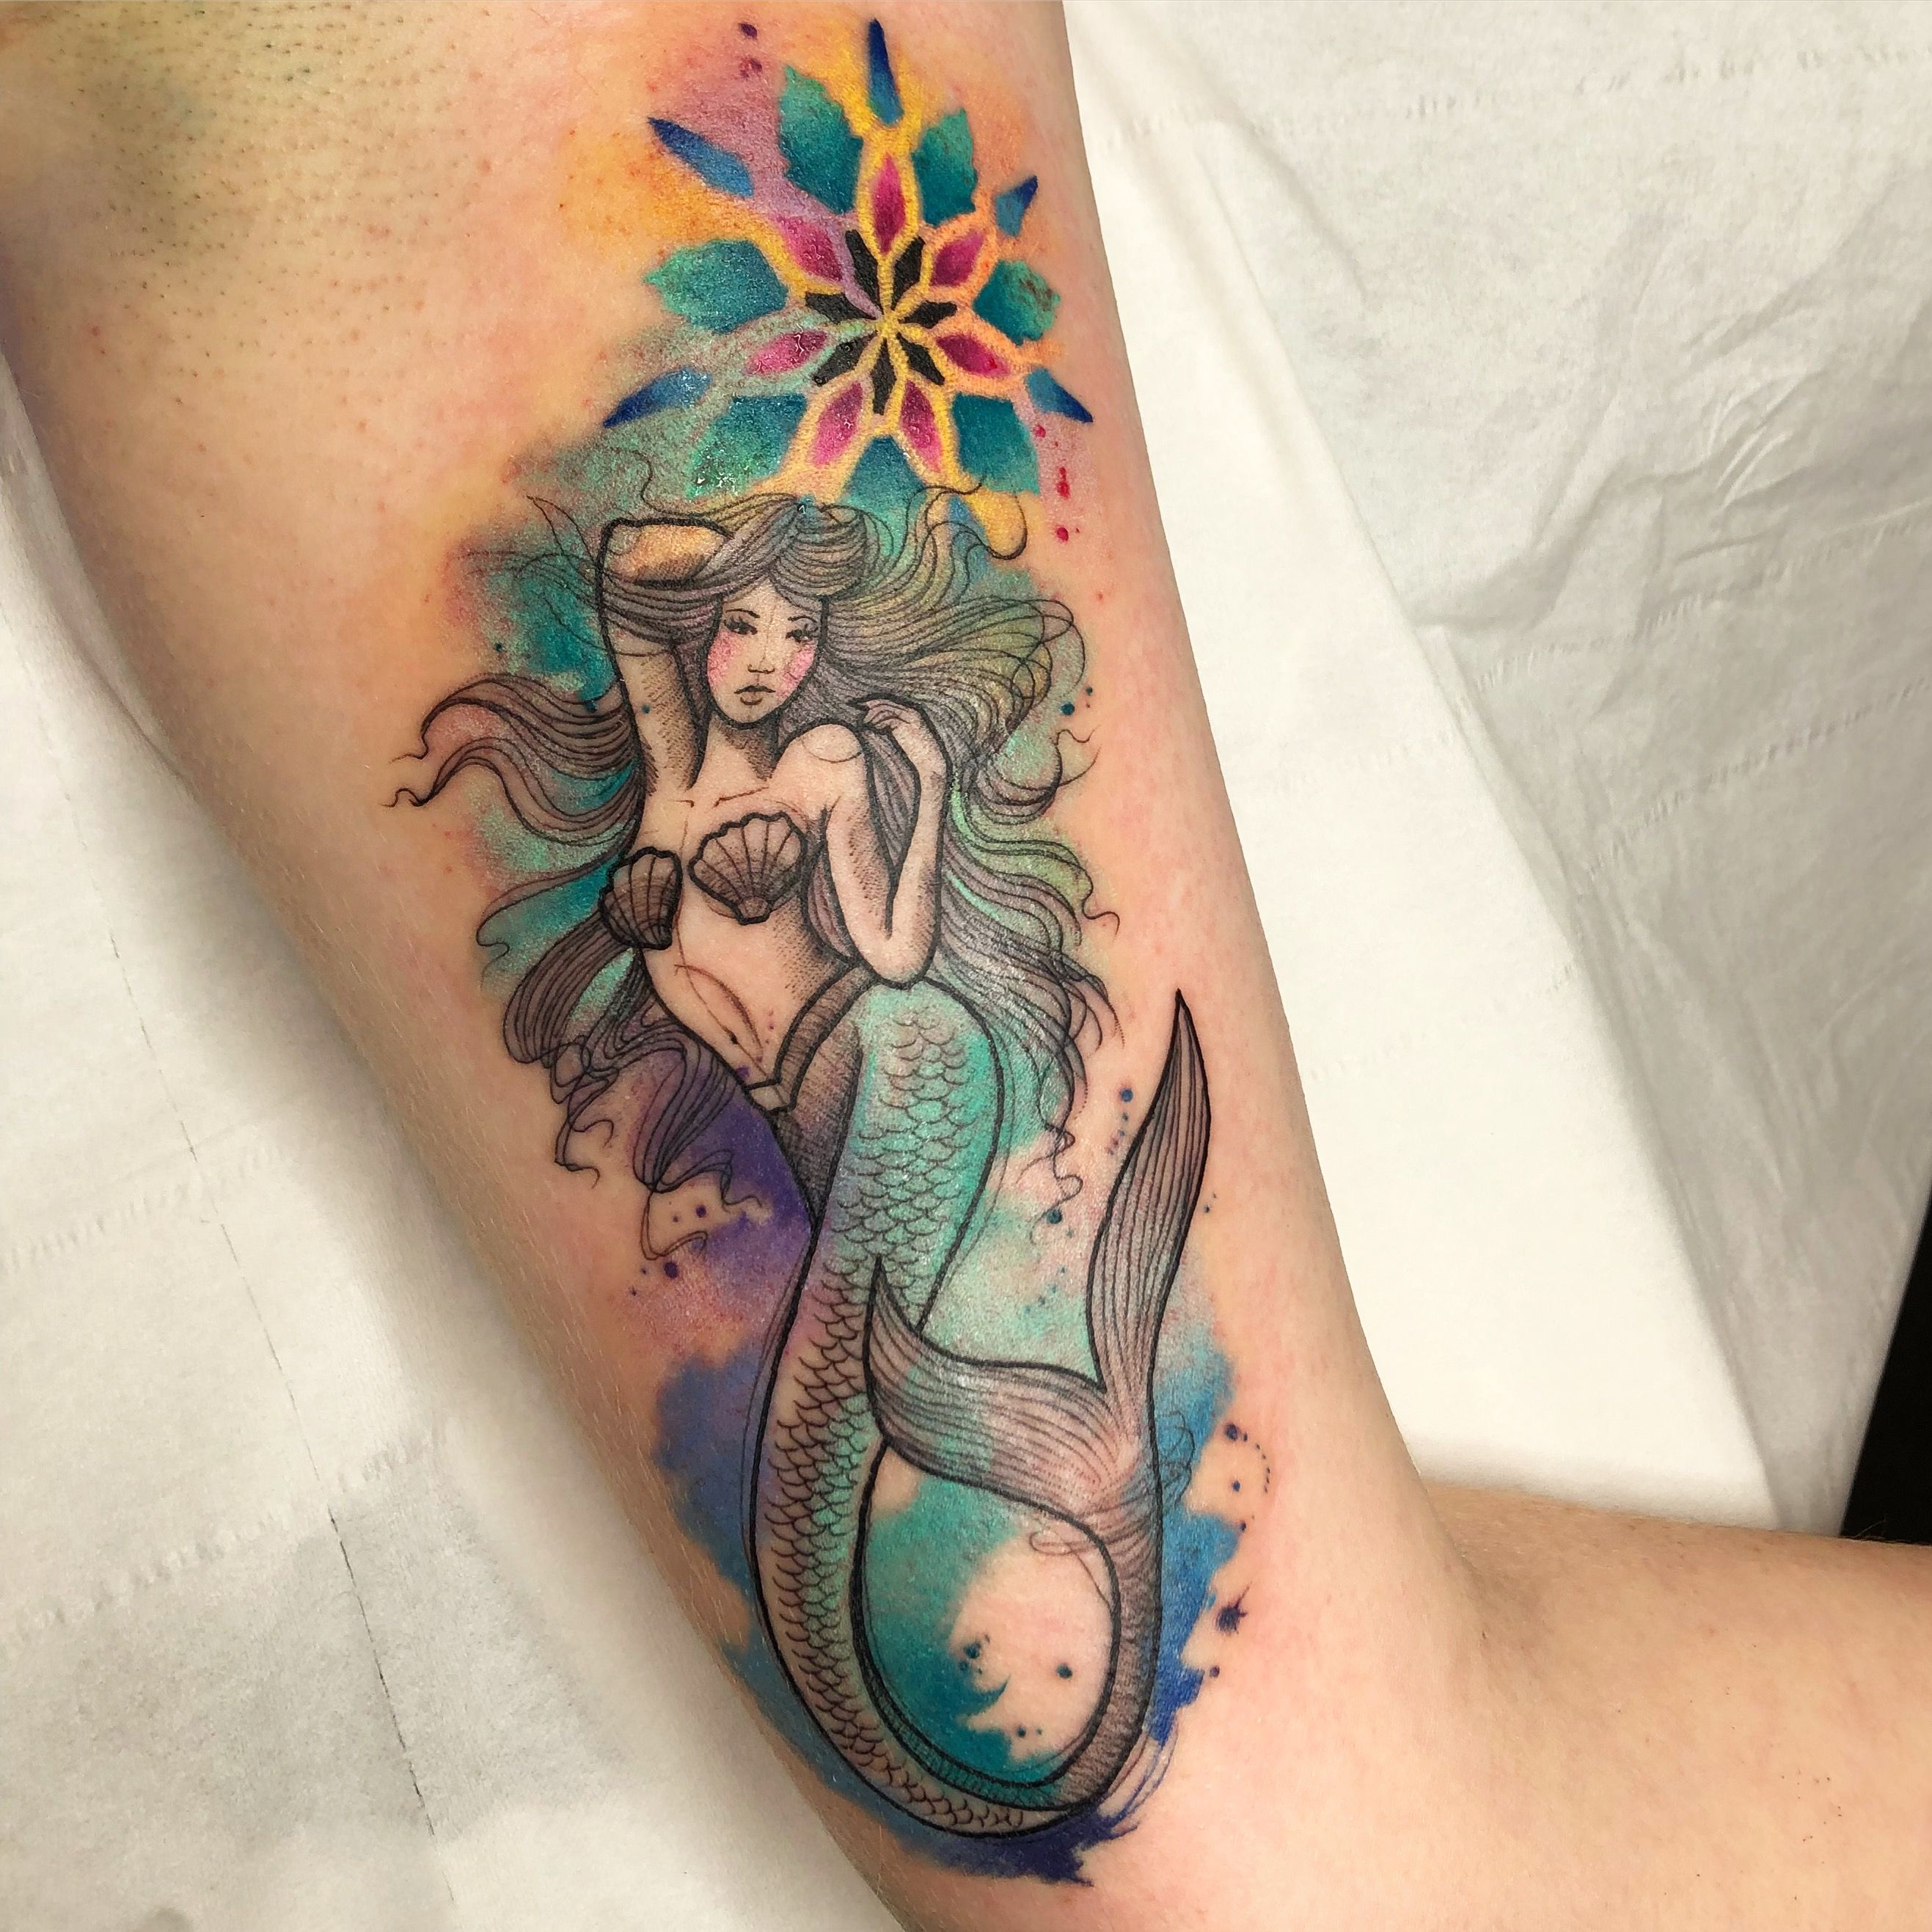 Watercolour Mermaid Mandala Tattoo Mermaid Tattoos Watercolor Mermaid Tattoo Tattoos